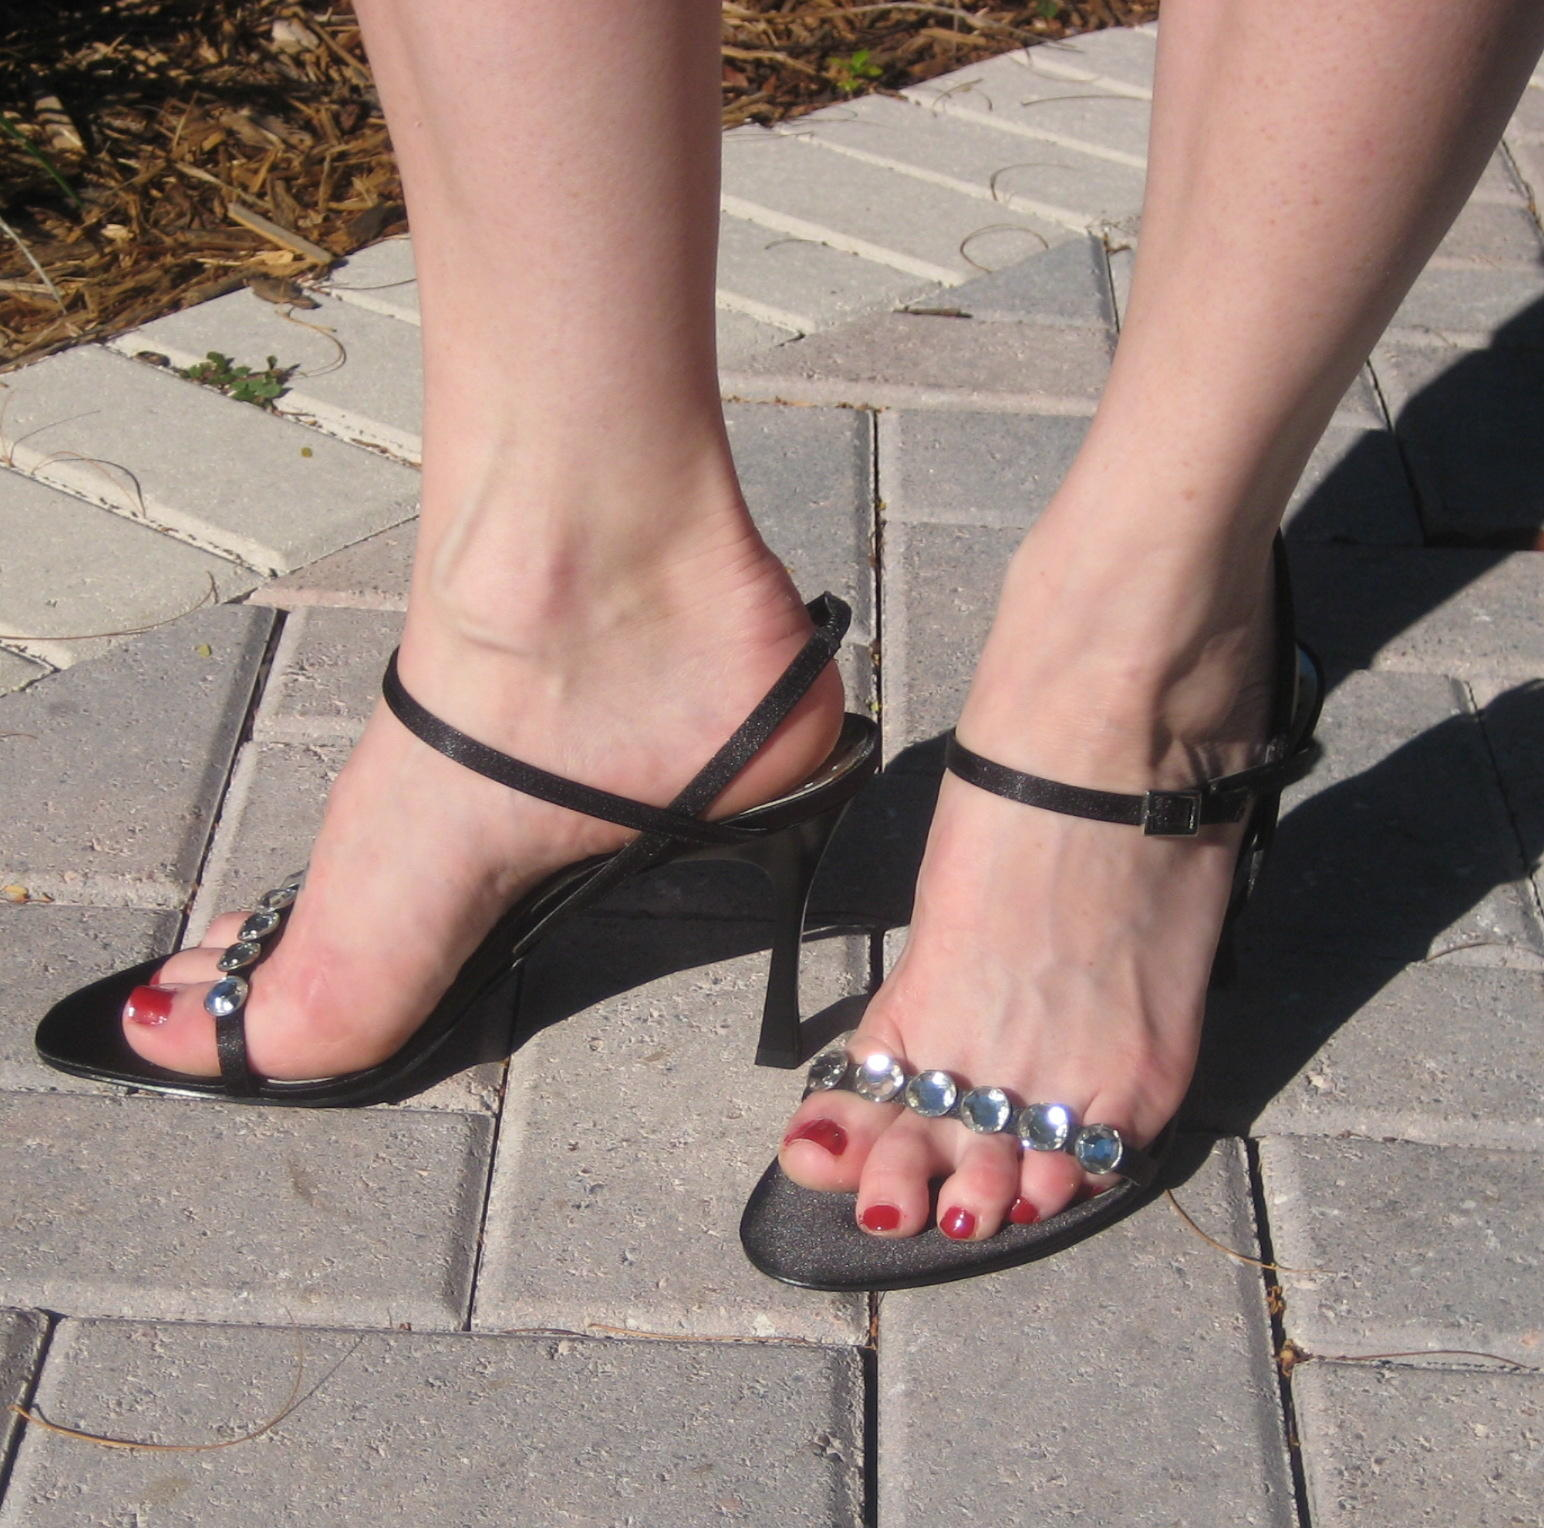 Mature feet in sandals